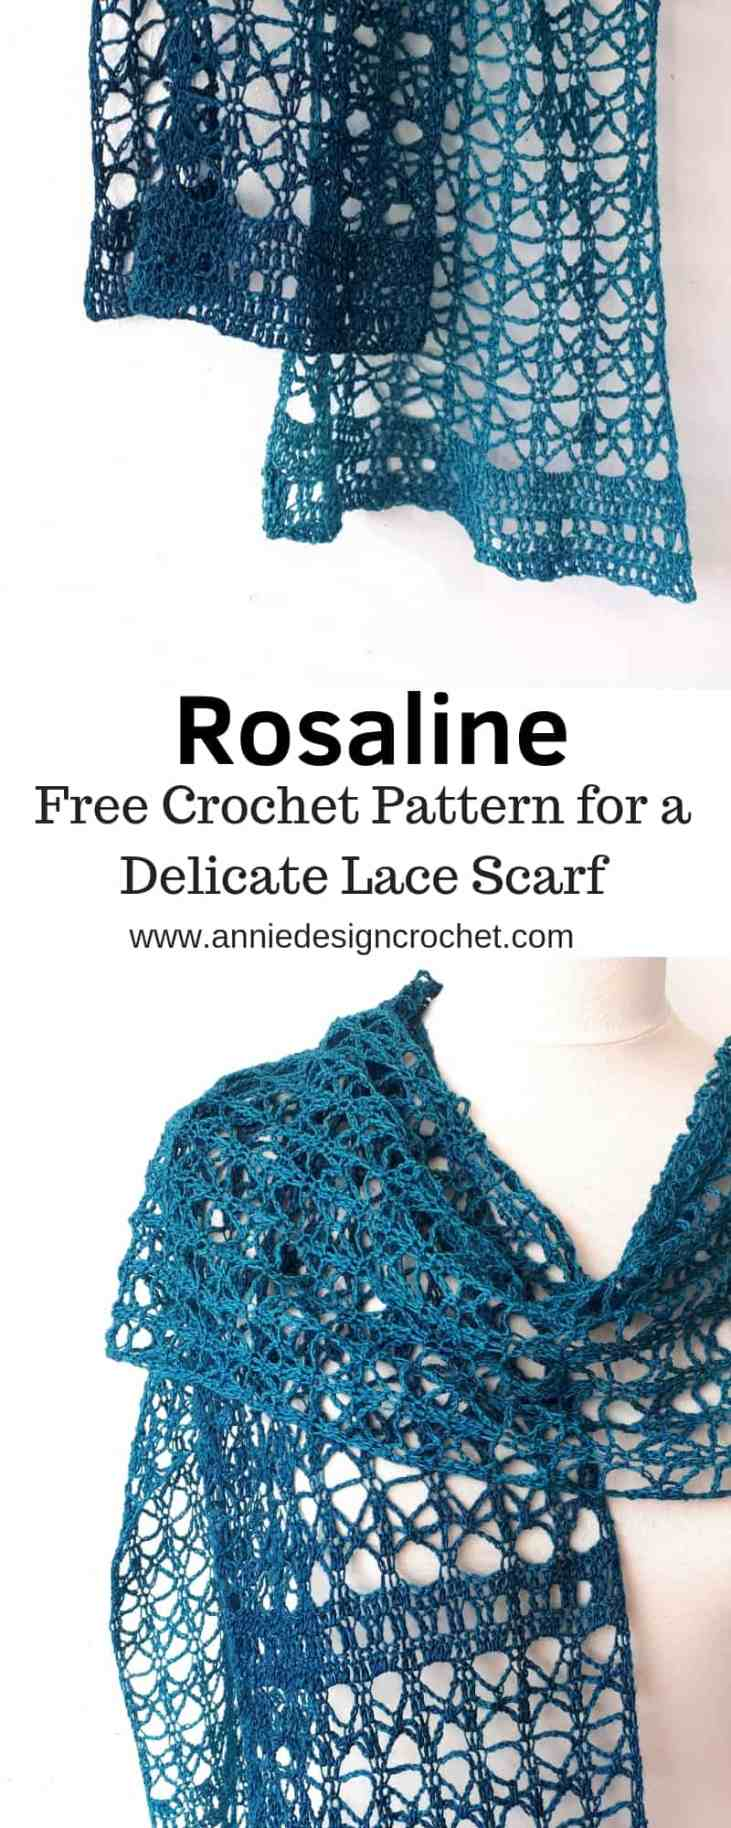 crochet lace scarf easy pattern